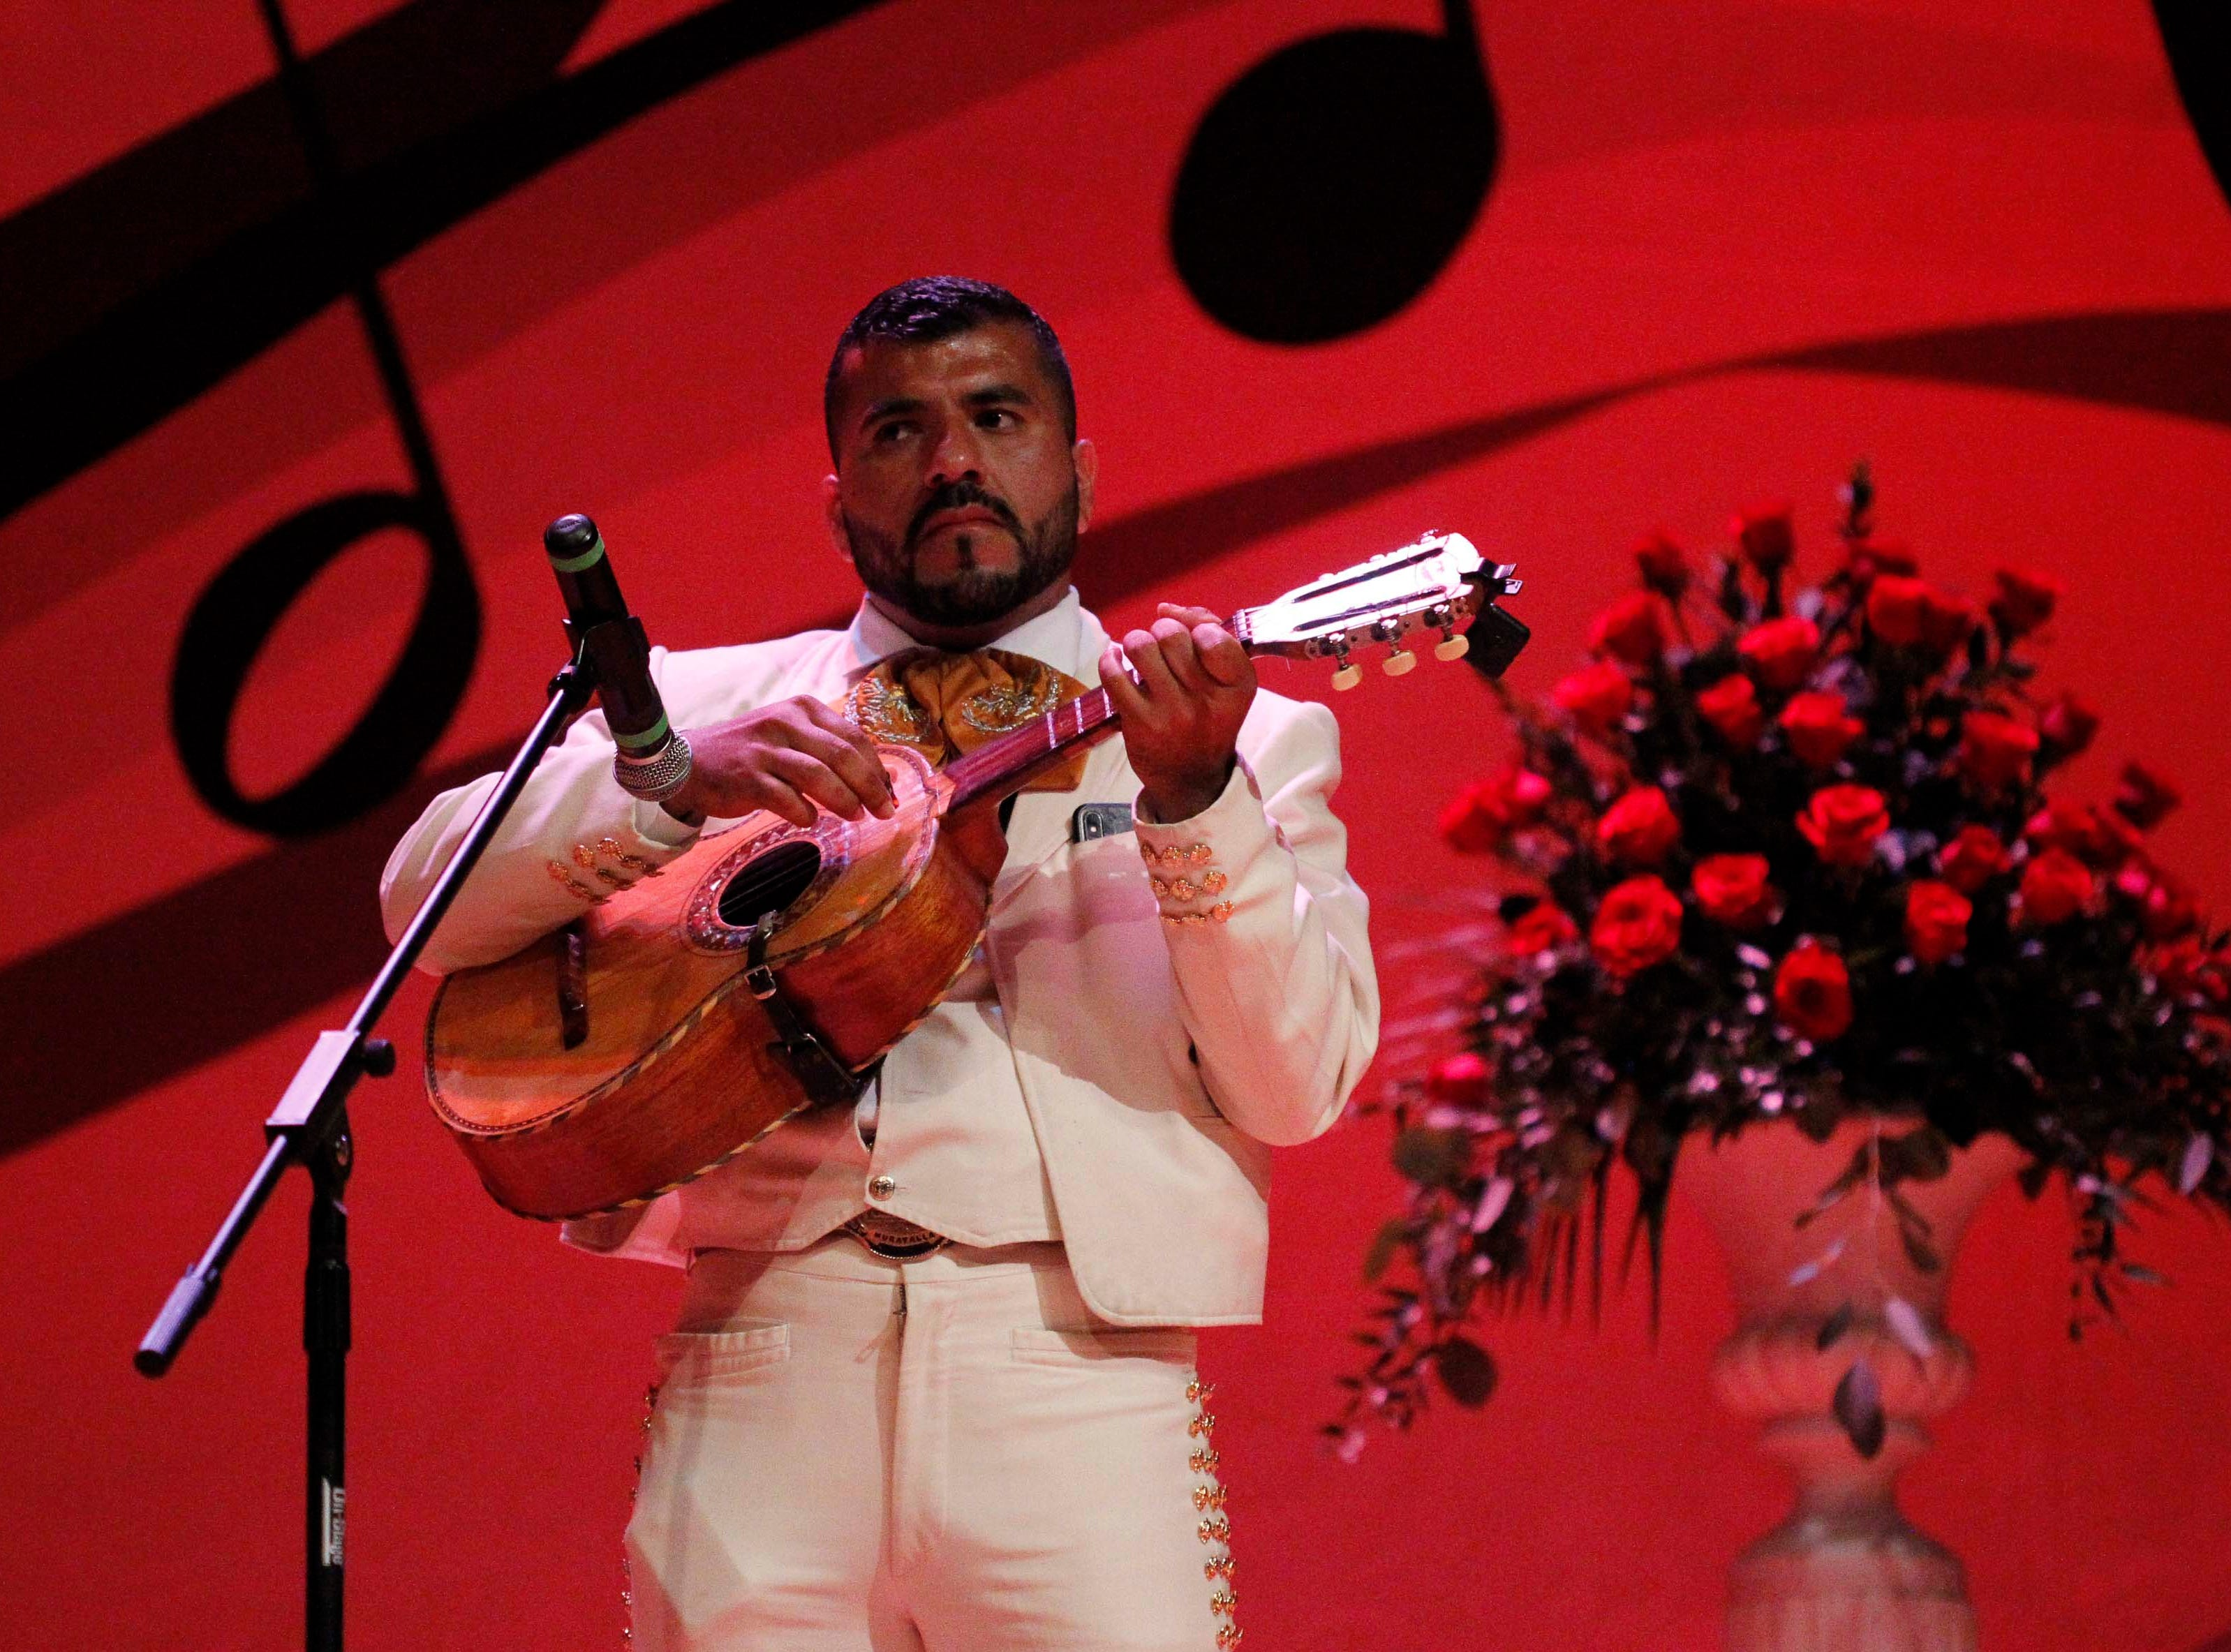 During the12th annual Noche Bohemia at Sherwood Hall on Saturday, April 27, 2019 in Salinas, Calif.